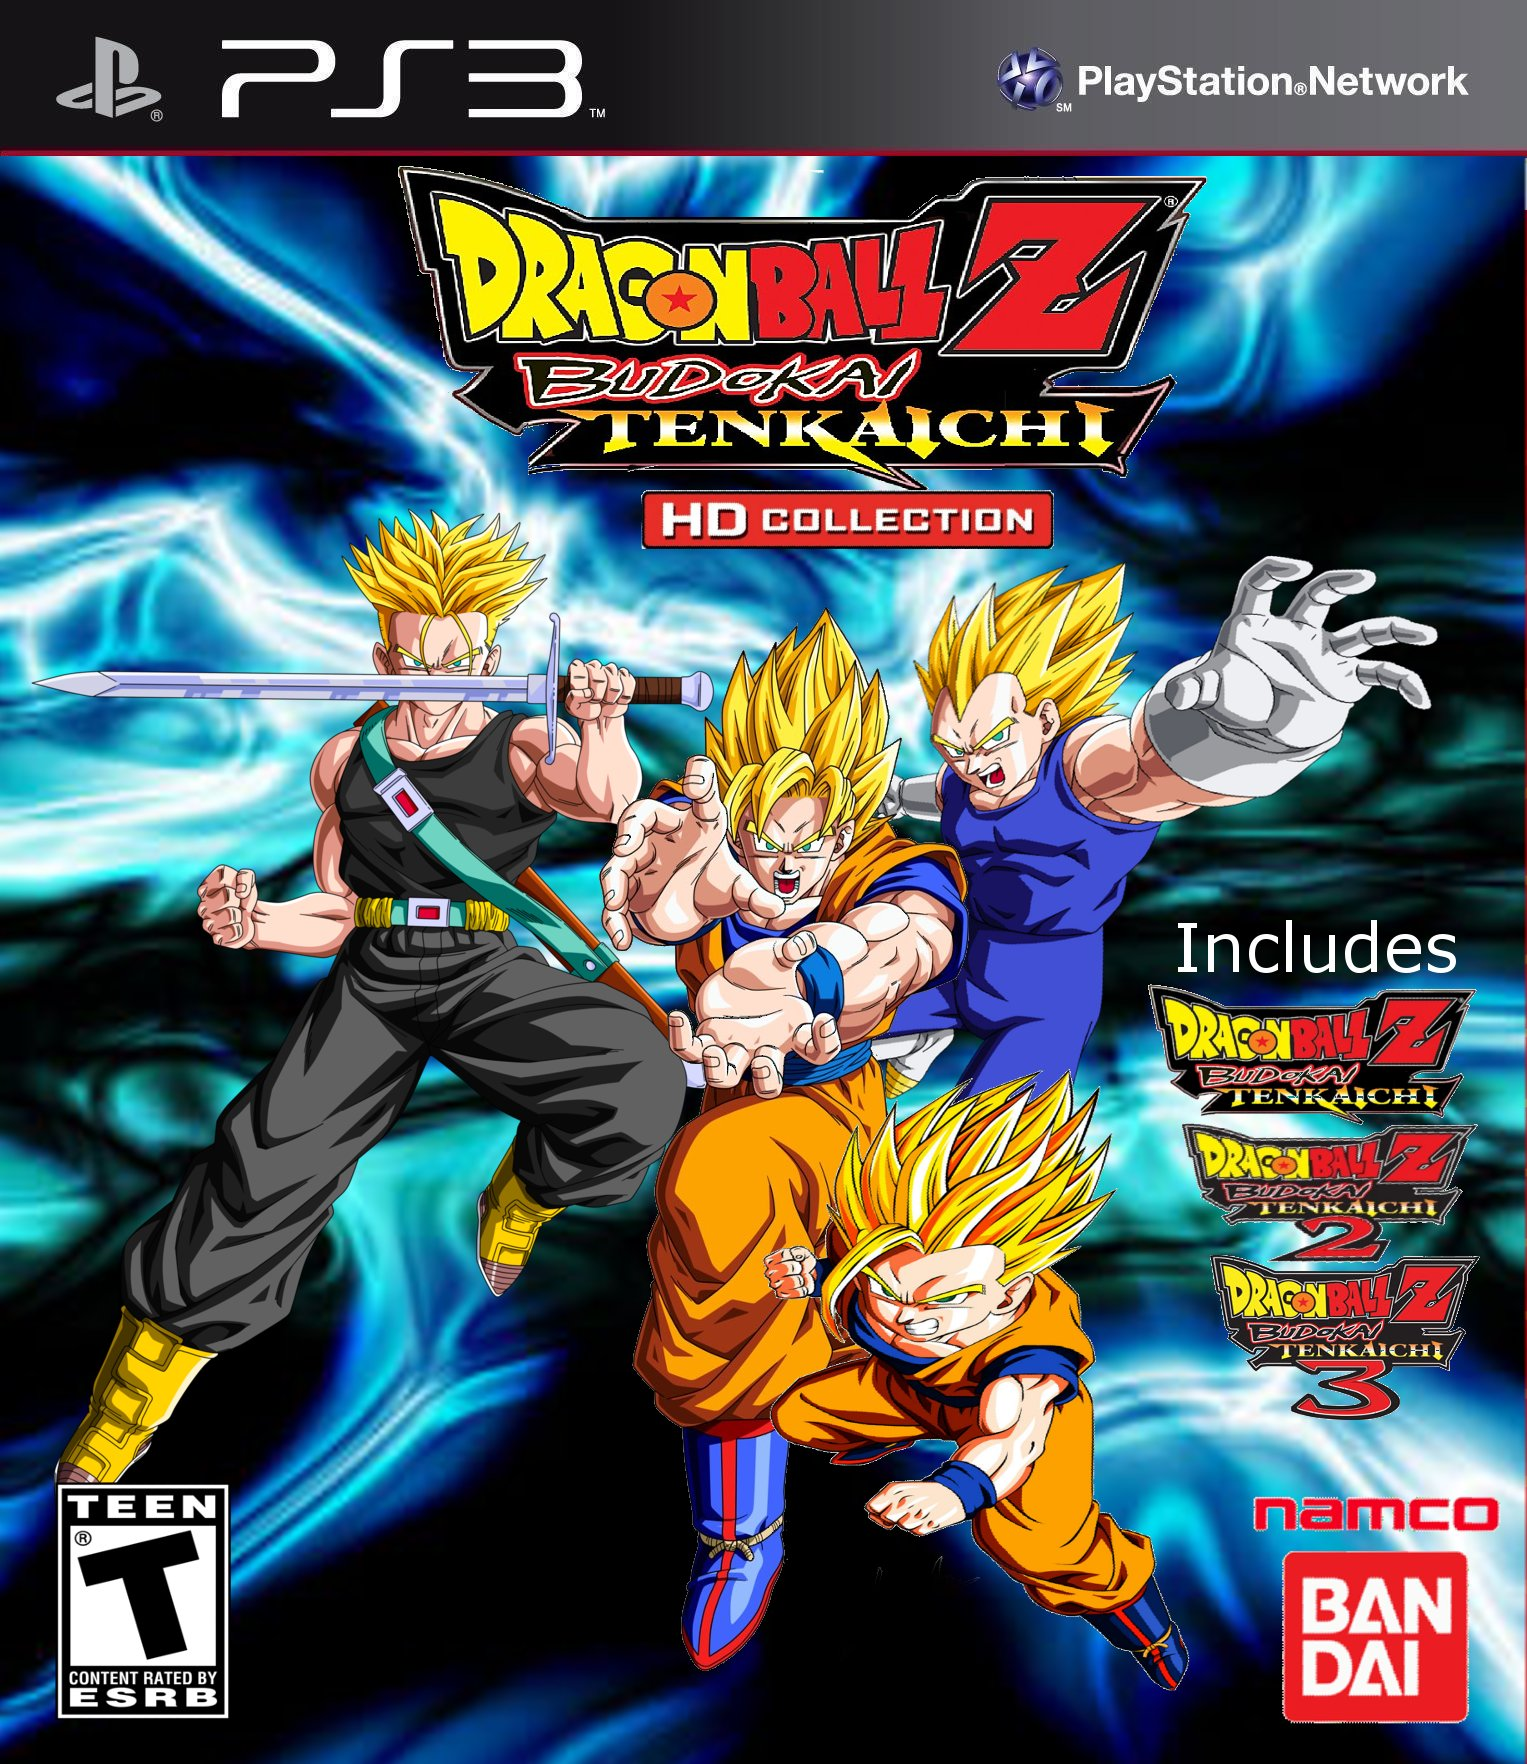 Dragon Ball Games For Ps3 : Category bandai game ideas wiki fandom powered by wikia